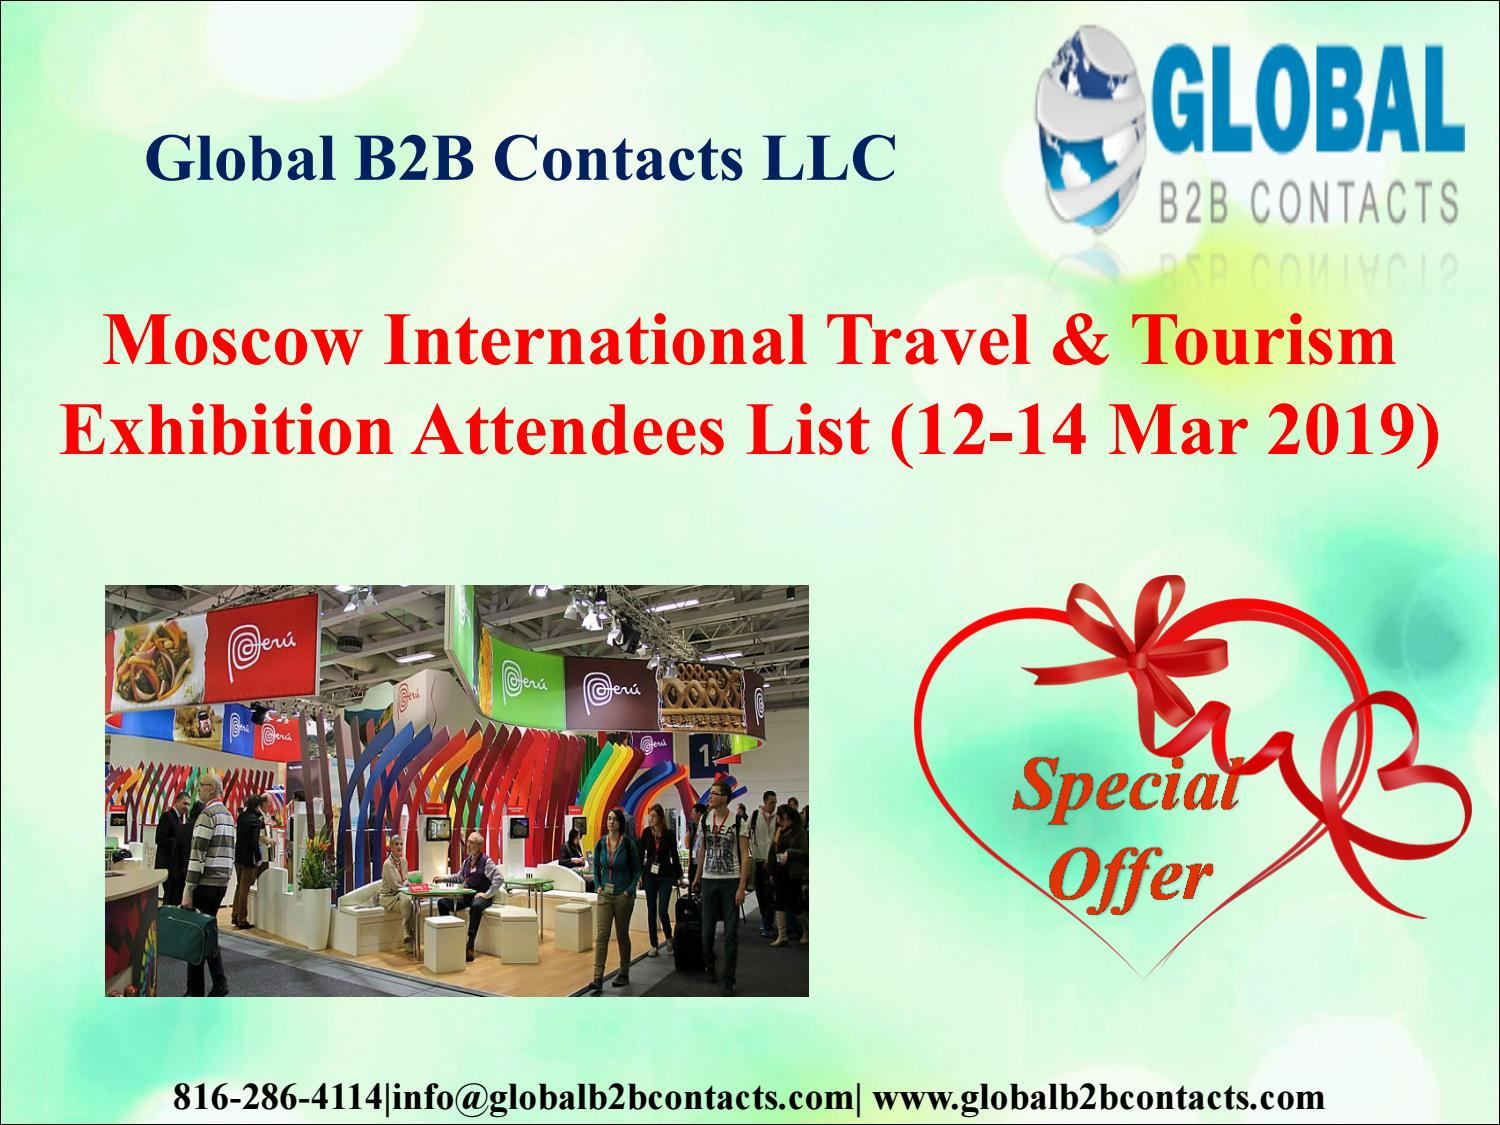 Moscow International Travel & Tourism Exhibition Attendees List (12